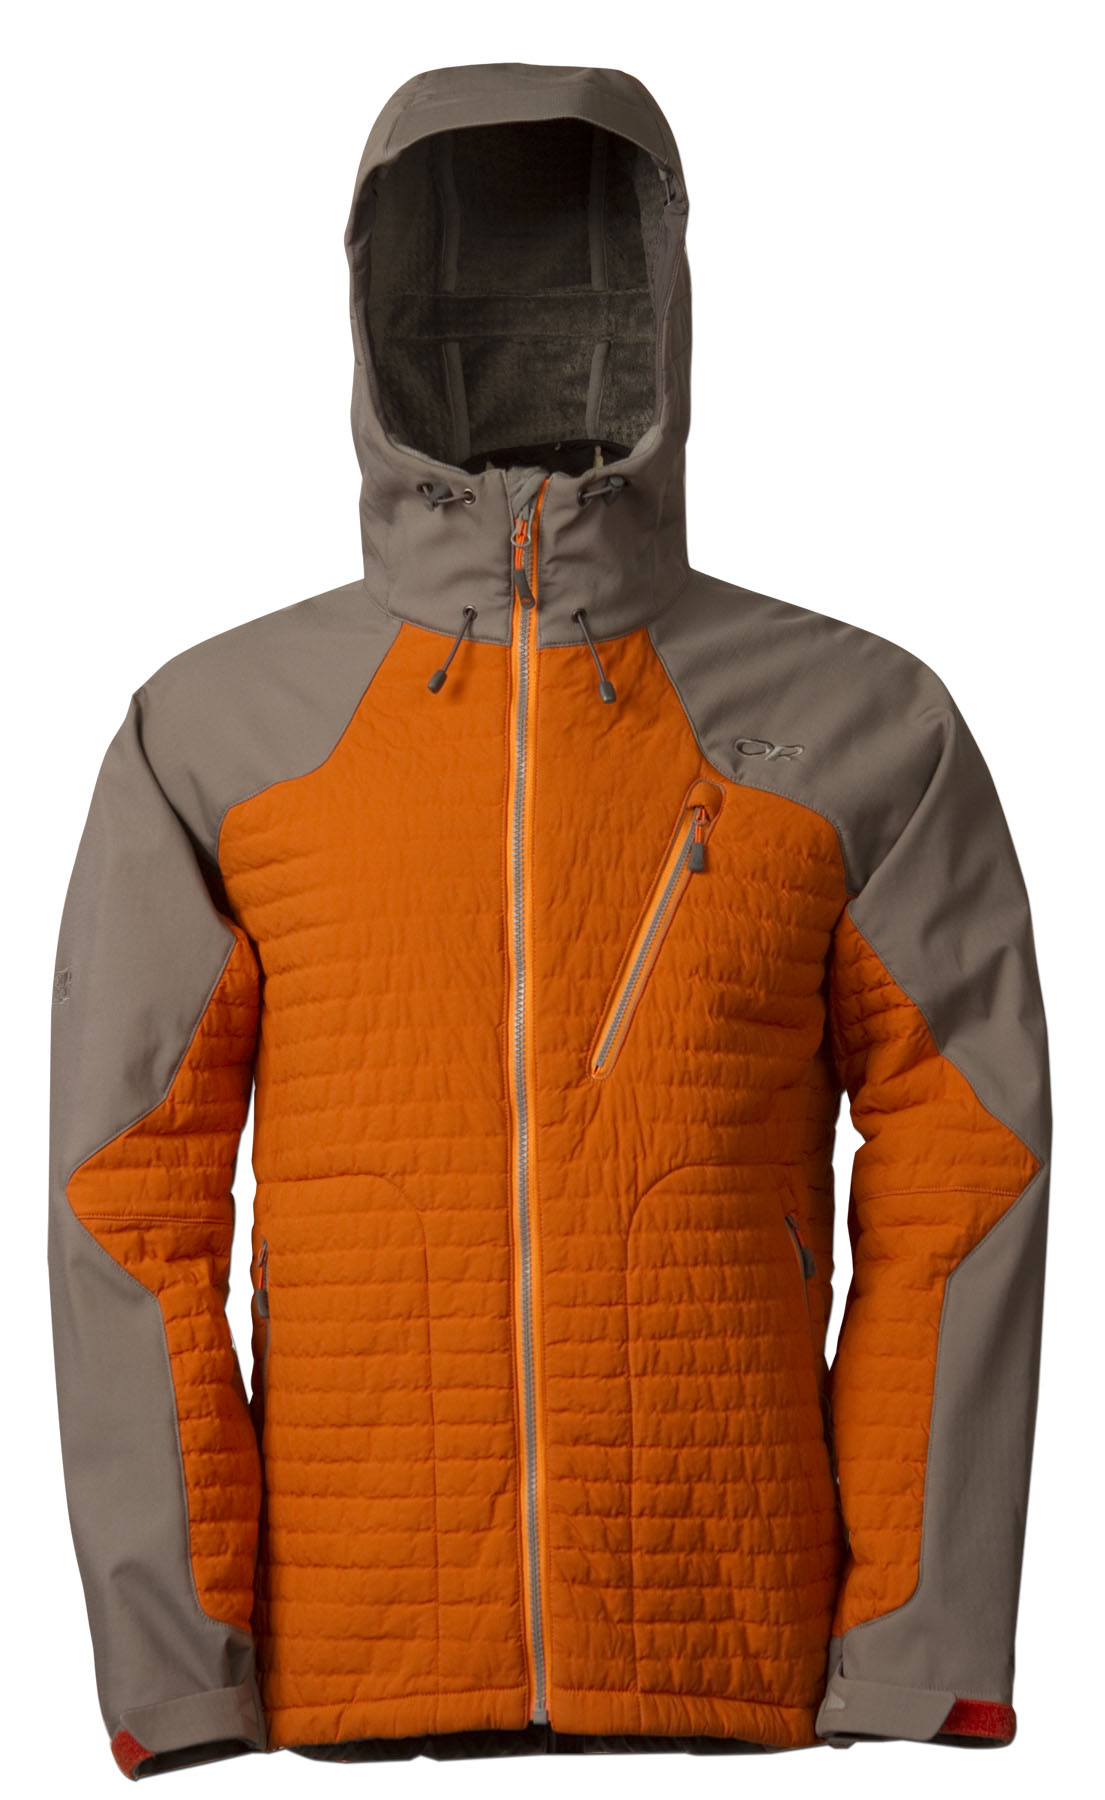 Outdoor Research Lodestar Jacket - Melding the warmth of a puffy with the moisture-wicking properties of fleece and the protection of a soft shell, the Lodestar Jacket and Pant were built for ice and alpine climbing in cold climates. They employ new Polartecr Power Shieldr High Loft², the warmest, lightest and most compressible softshell fabric, and Polartecr Power Shieldr Pro, the ultimate soft shell, in key areas for increased weather protection and warmth while maintaining critical breathability. The result allows climbers to eliminate layers, improve freedom of movement, and transport moisture more effectively through a wider range of cold temperatures and weather conditions.